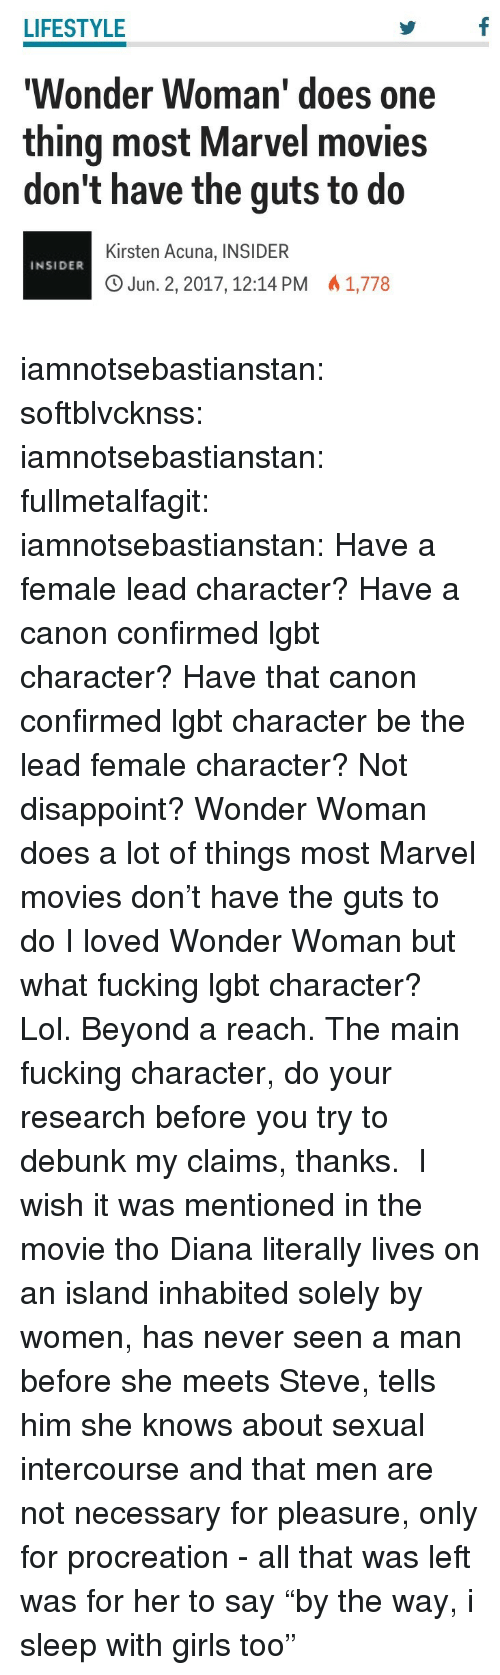 "Girls, Lgbt, and Lol: LIFESTYLE  Wonder Woman' does one  thing most Marvel movies  don't have the guts to do  Kirsten Acuna, INSIDER  O Jun. 2, 2017, 12:14 PM 1,778  INSIDER iamnotsebastianstan: softblvcknss:   iamnotsebastianstan:   fullmetalfagit:  iamnotsebastianstan:  Have a female lead character? Have a canon confirmed lgbt character? Have that canon confirmed lgbt character be the lead female character? Not disappoint? Wonder Woman does a lot of things most Marvel movies don't have the guts to do  I loved Wonder Woman but what fucking lgbt character? Lol. Beyond a reach.   The main fucking character, do your research before you try to debunk my claims, thanks.    I wish it was mentioned in the movie tho   Diana literally lives on an island inhabited solely by women, has never seen a man before she meets Steve, tells him she knows about sexual intercourse and that men are not necessary for pleasure, only for procreation - all that was left was for her to say ""by the way, i sleep with girls too"""